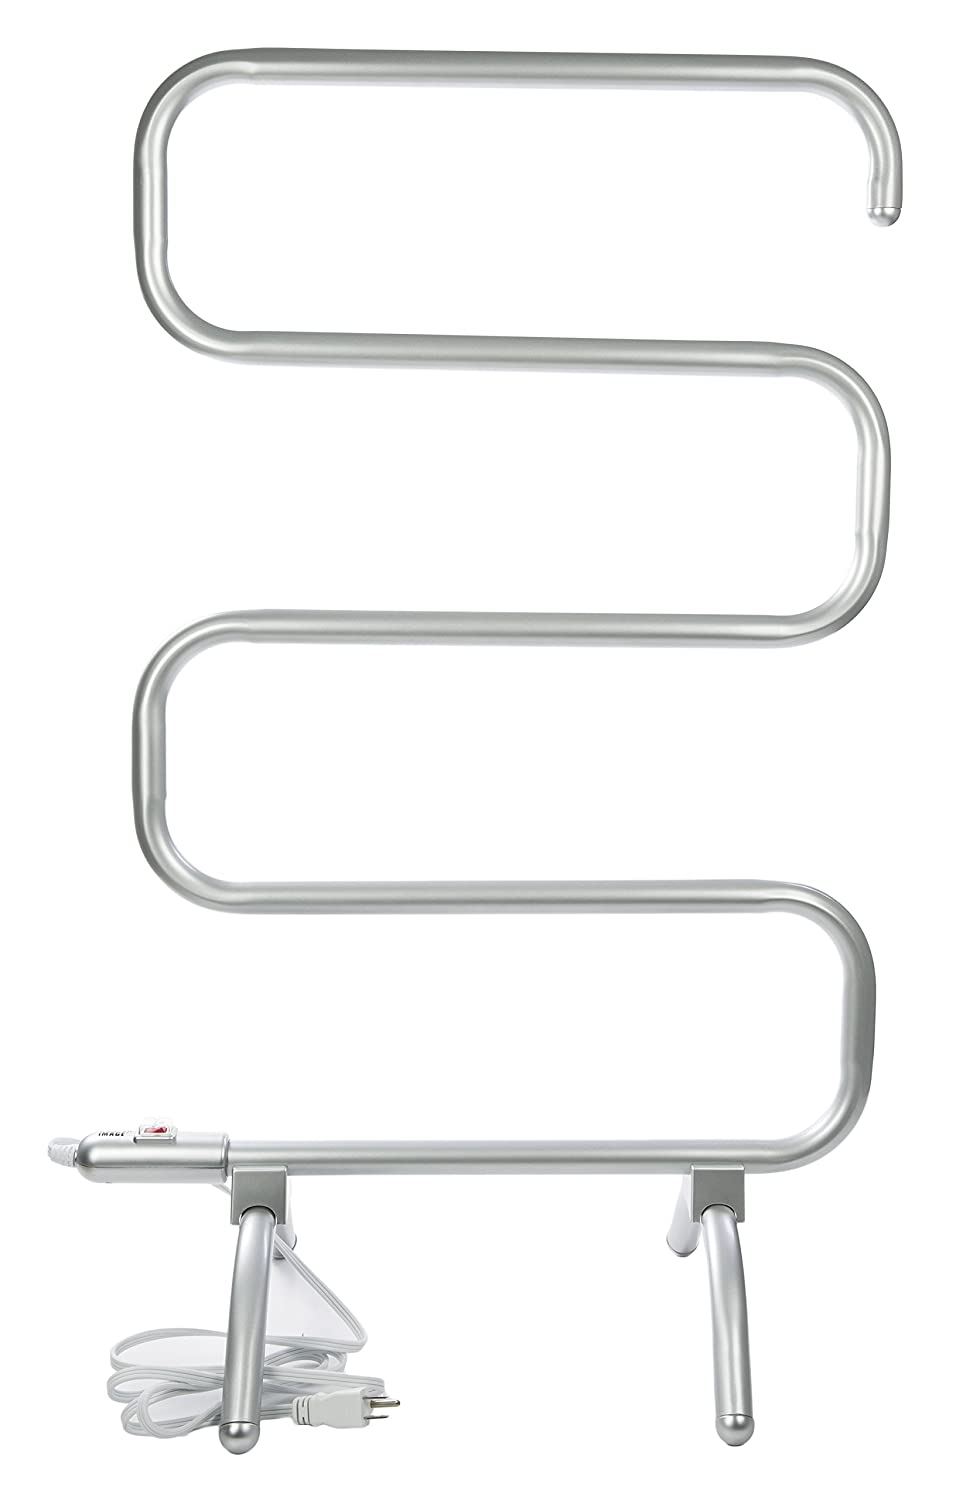 Sharper Image Curved Towel Warmer, Silver Ginsey Home Solutions 01283